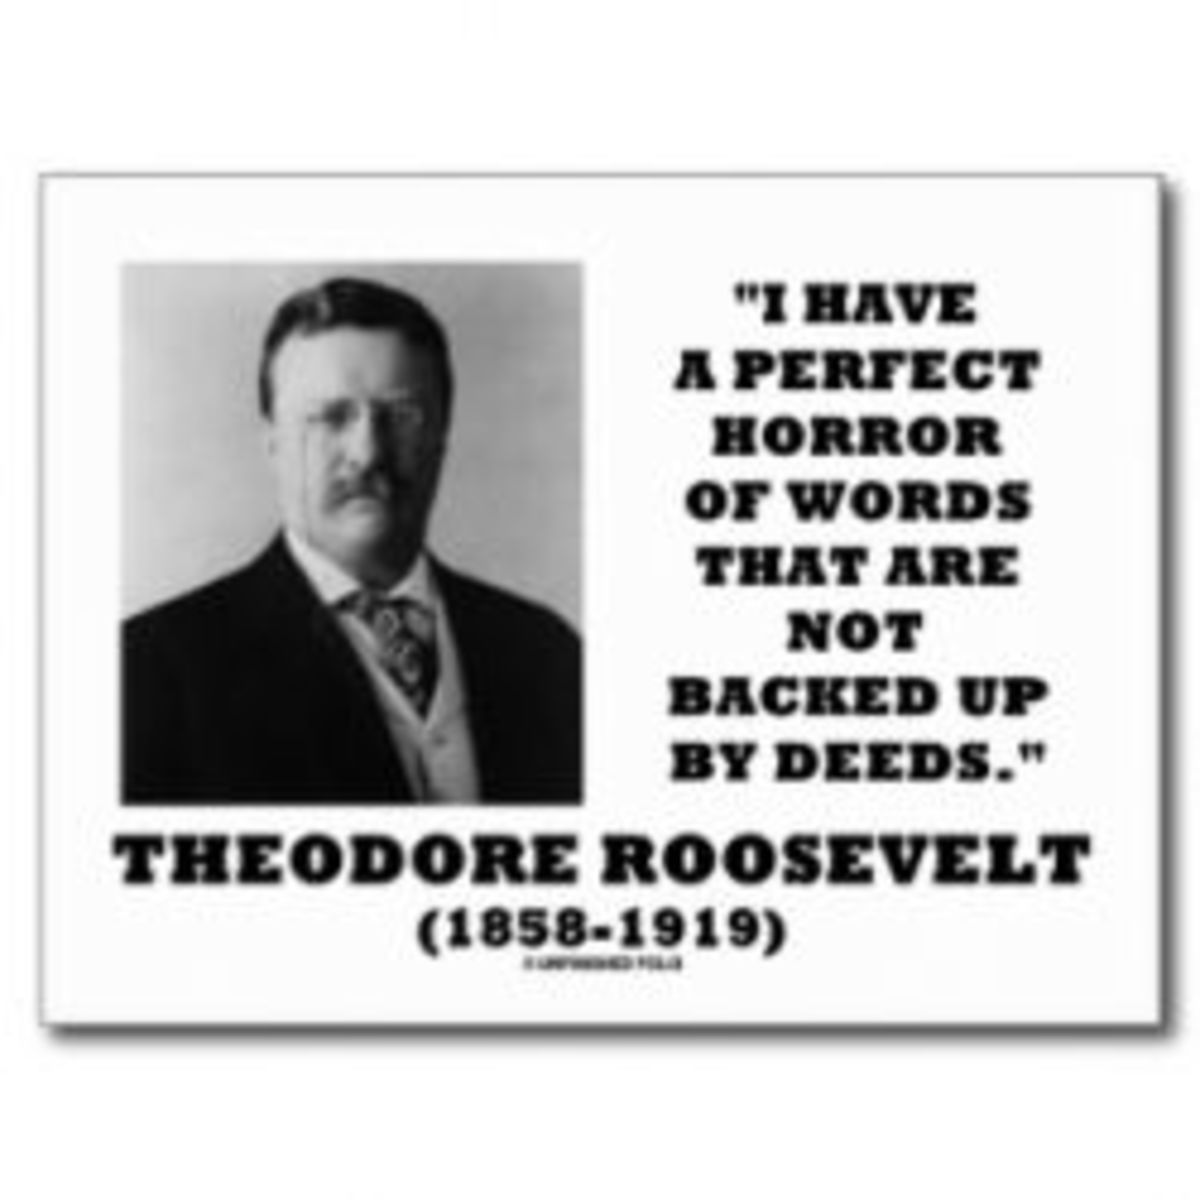 Become Theodore Roosevelt for a Day